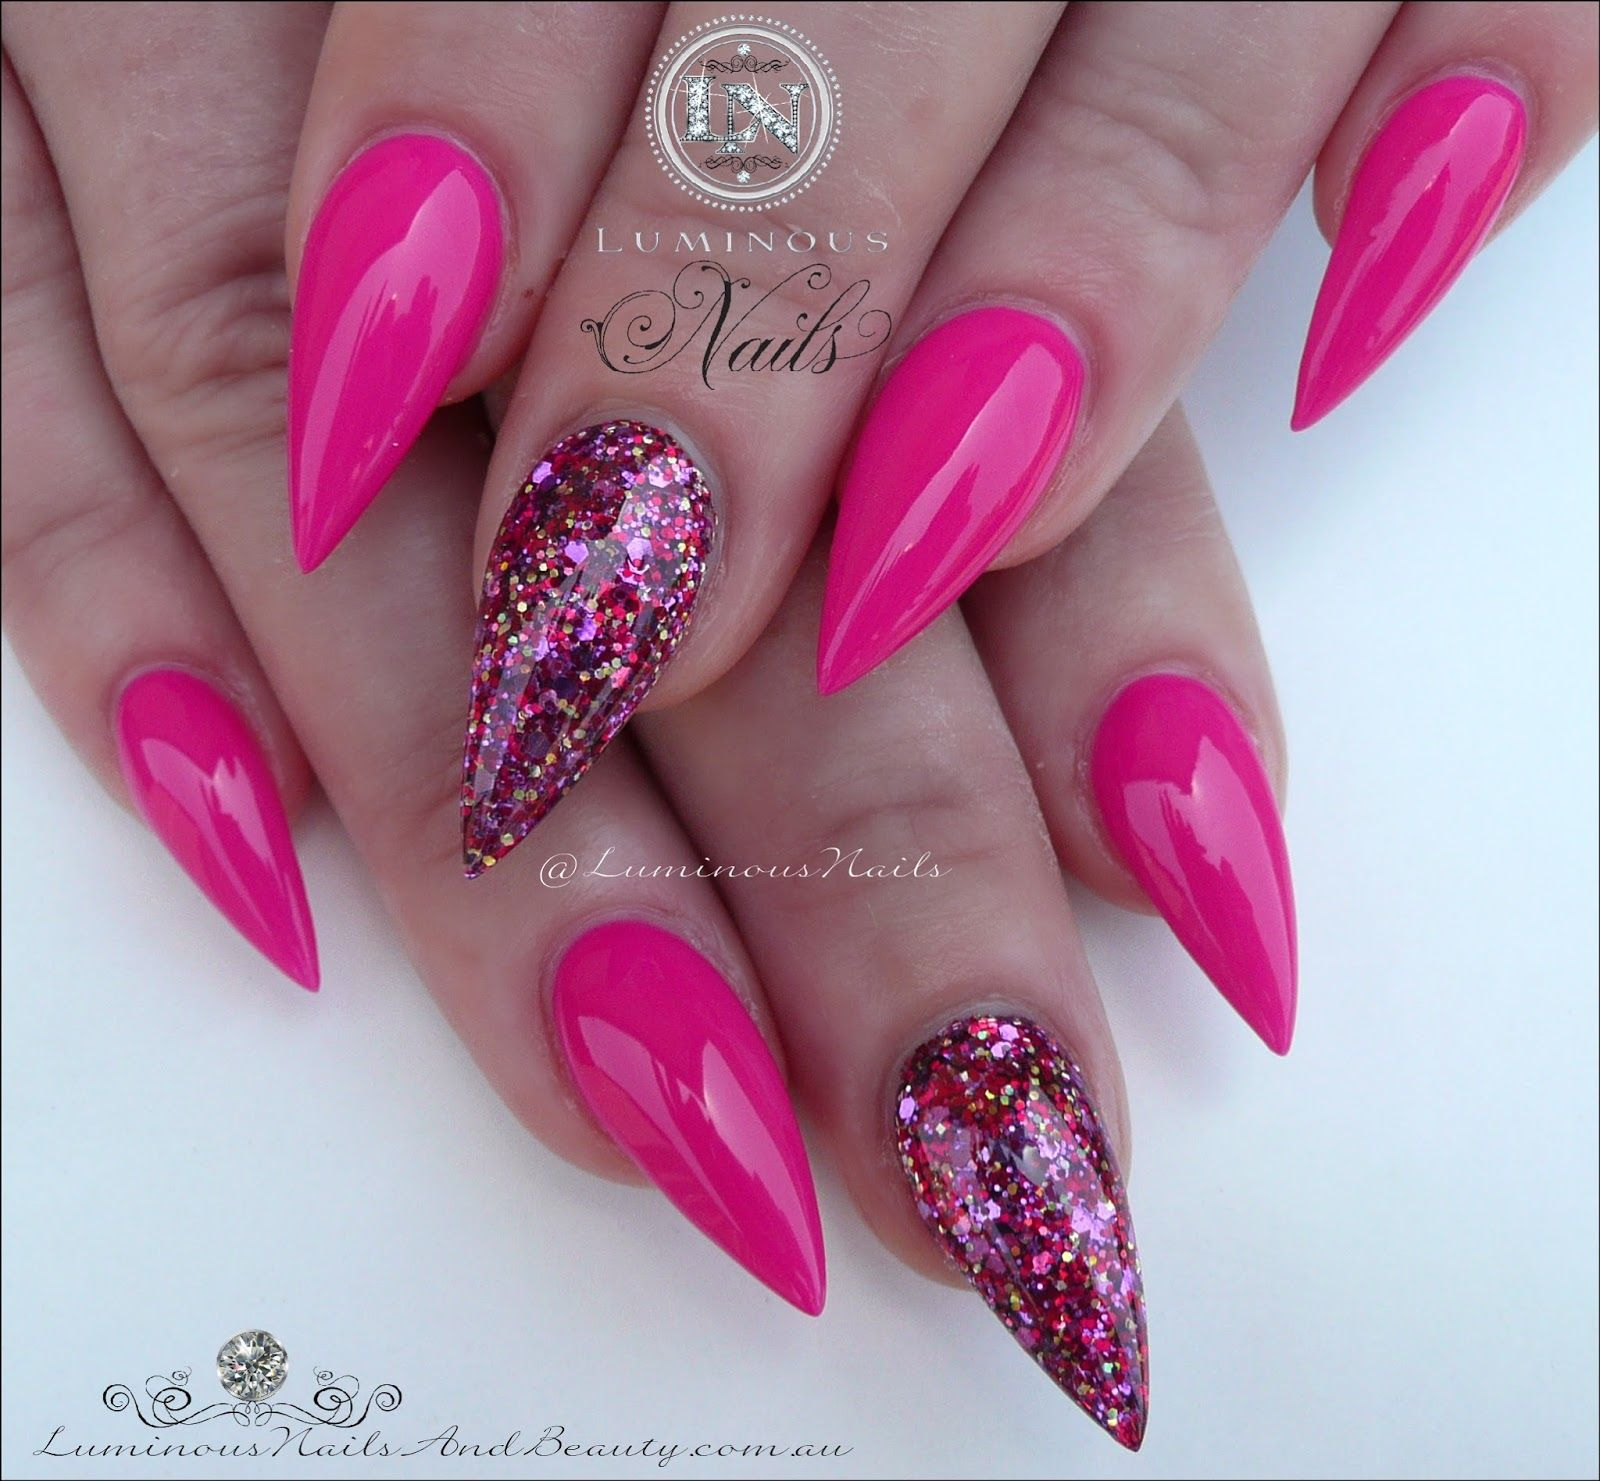 Luminous+Nails+%26+Beauty%2C+Gold+Coast+QLD.+Fuchsia+Pink+Nails%2C+ ...